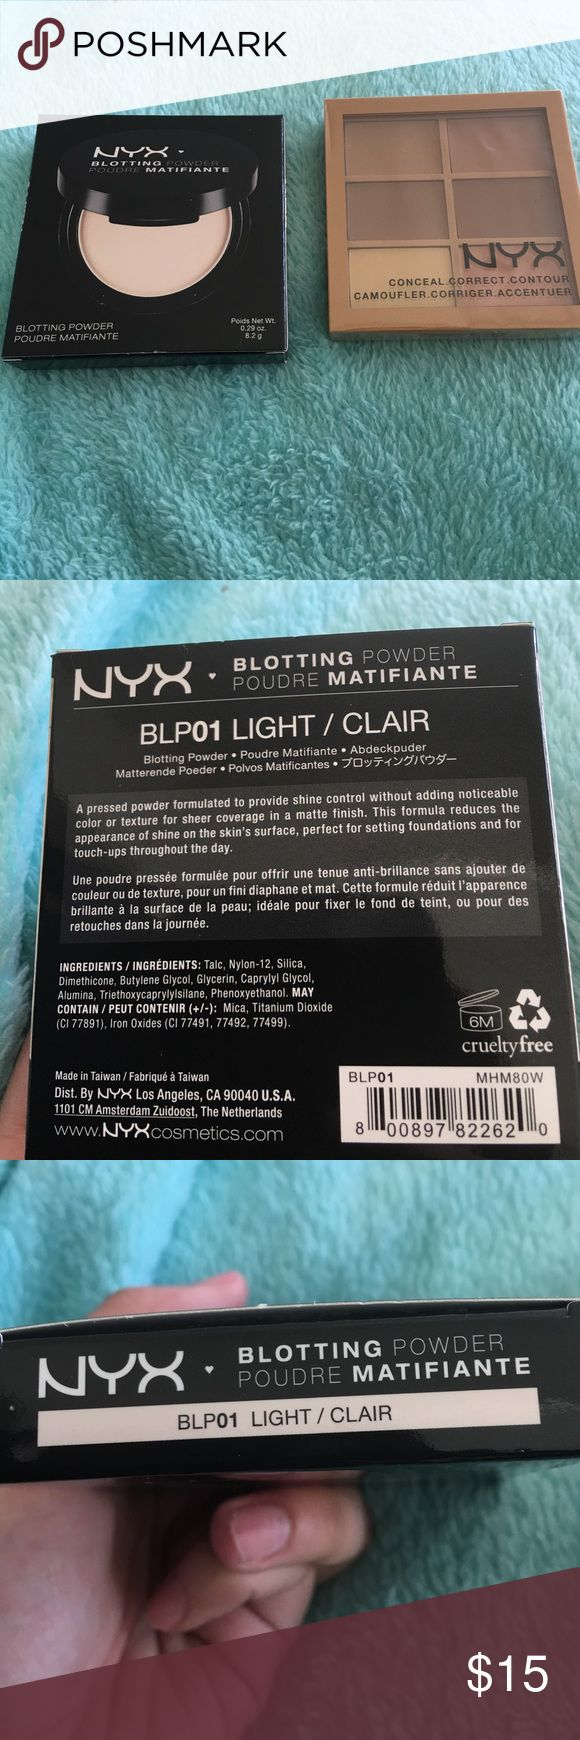 Makeup duo NYX blotting powder in light & NYX conceal. Correct. Contour. ALL NEW IN BOX AND SEALED Sephora Makeup Concealer